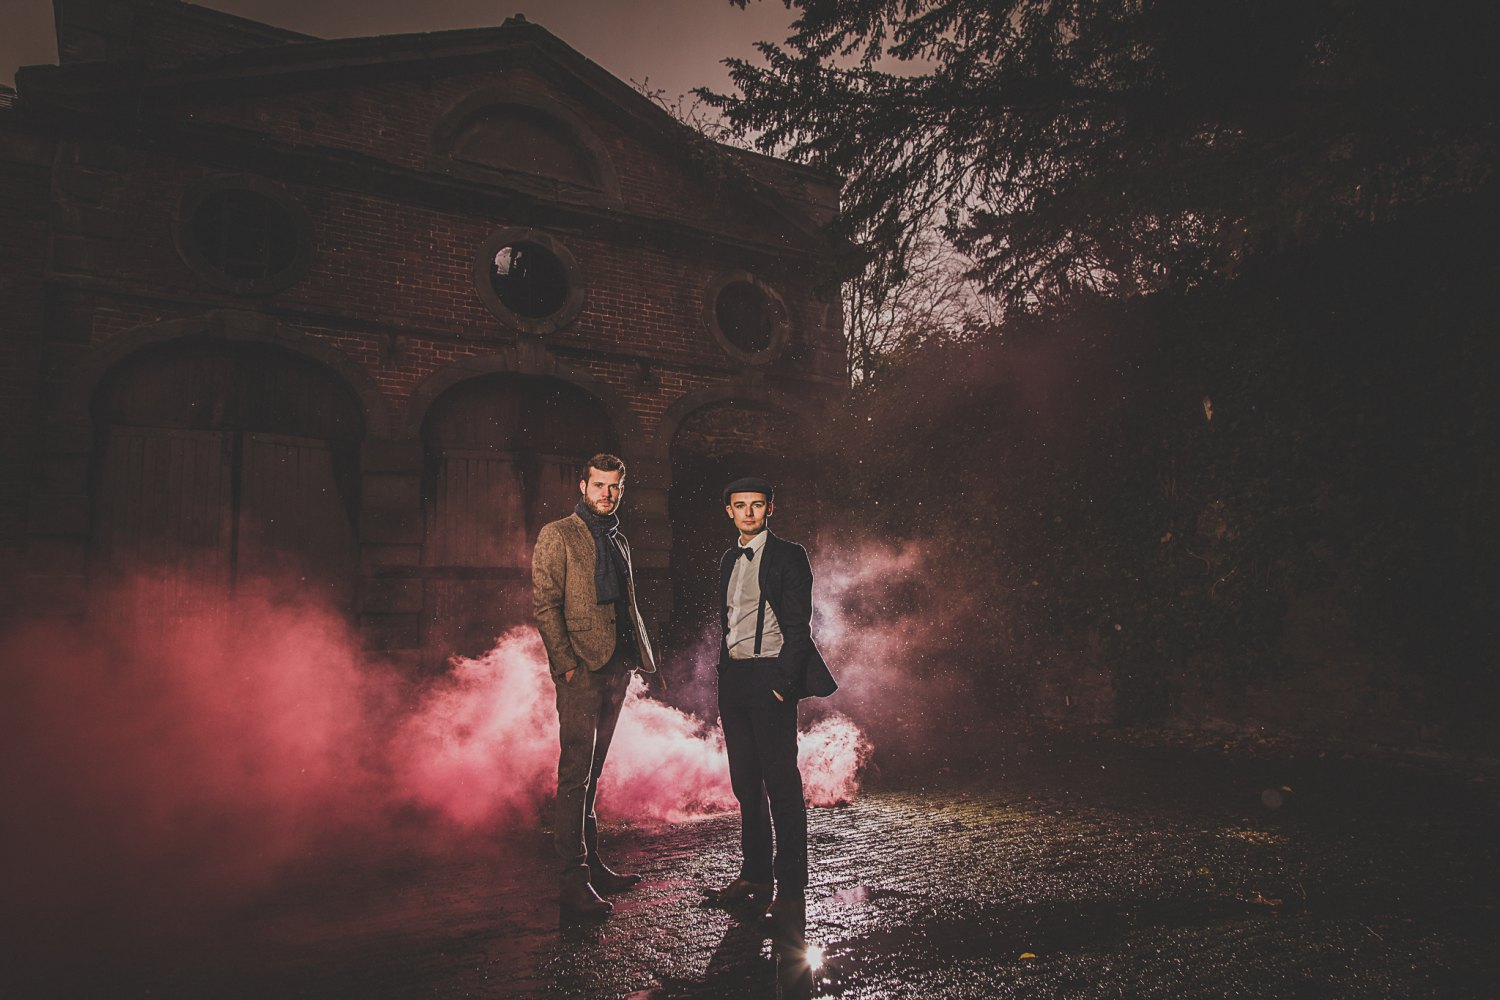 Two men outside an abandoned building